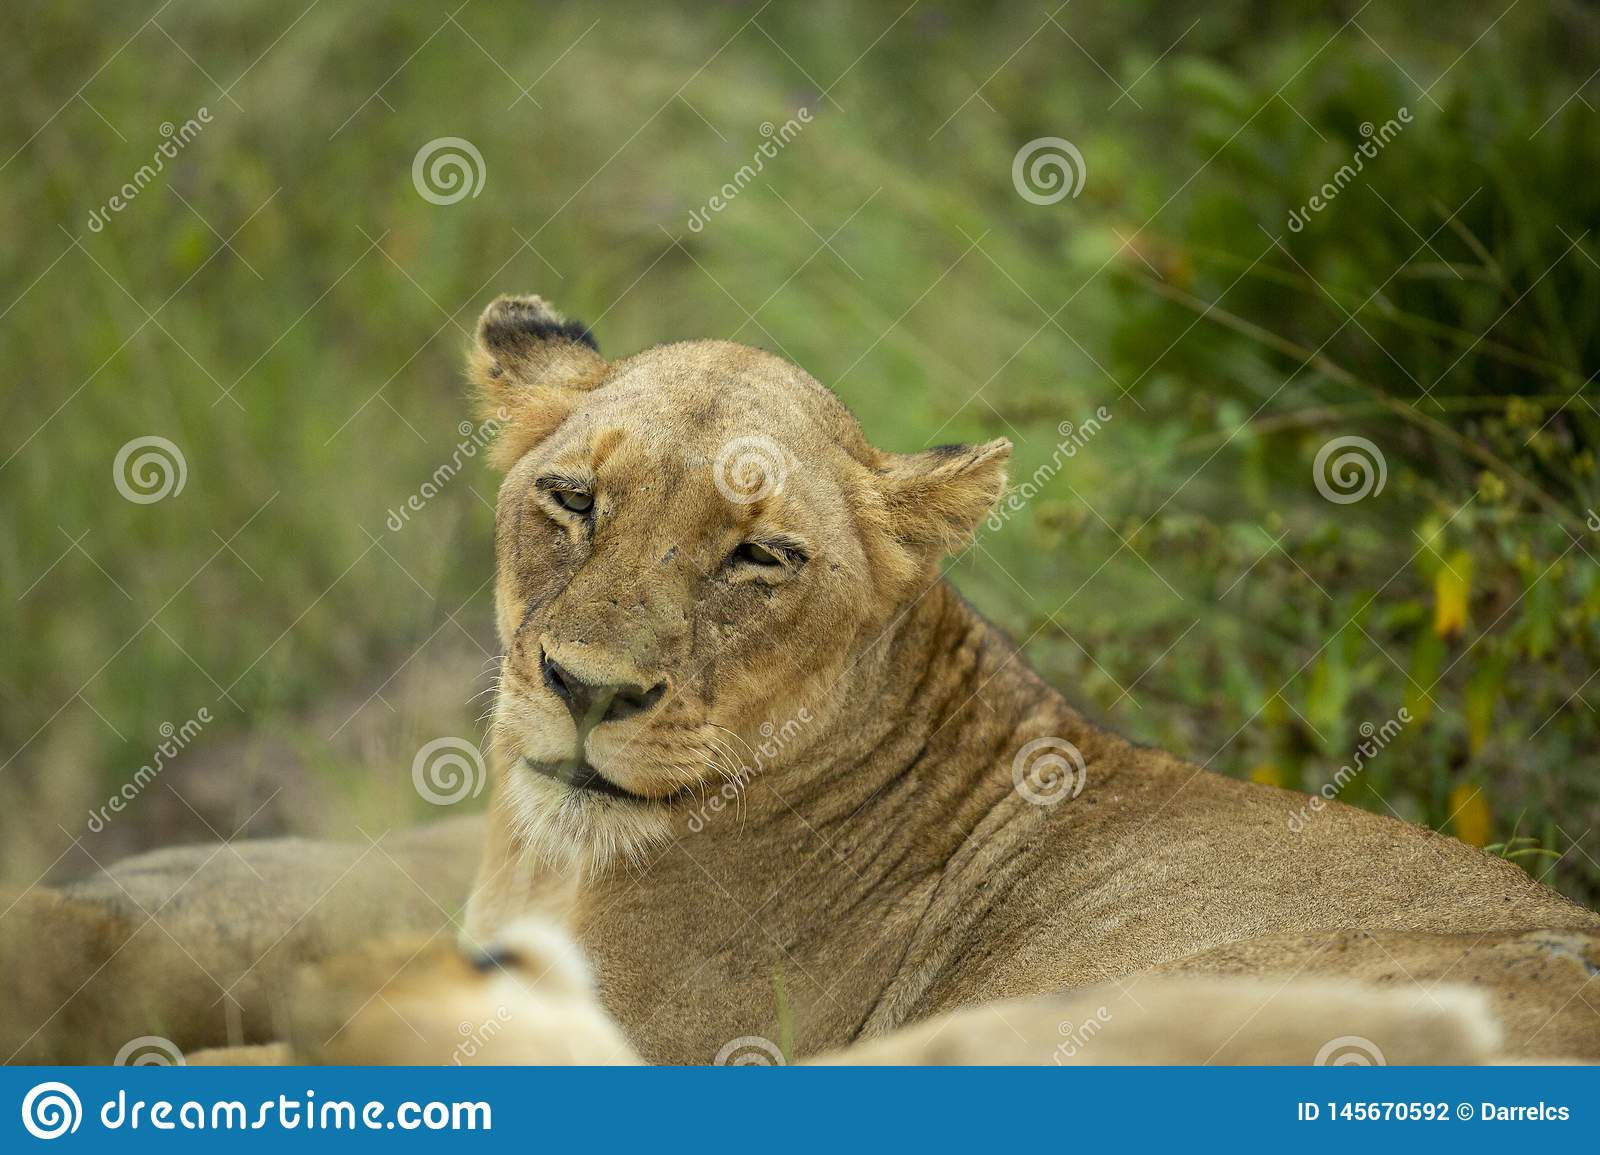 The lioness just awaking after a good nap/